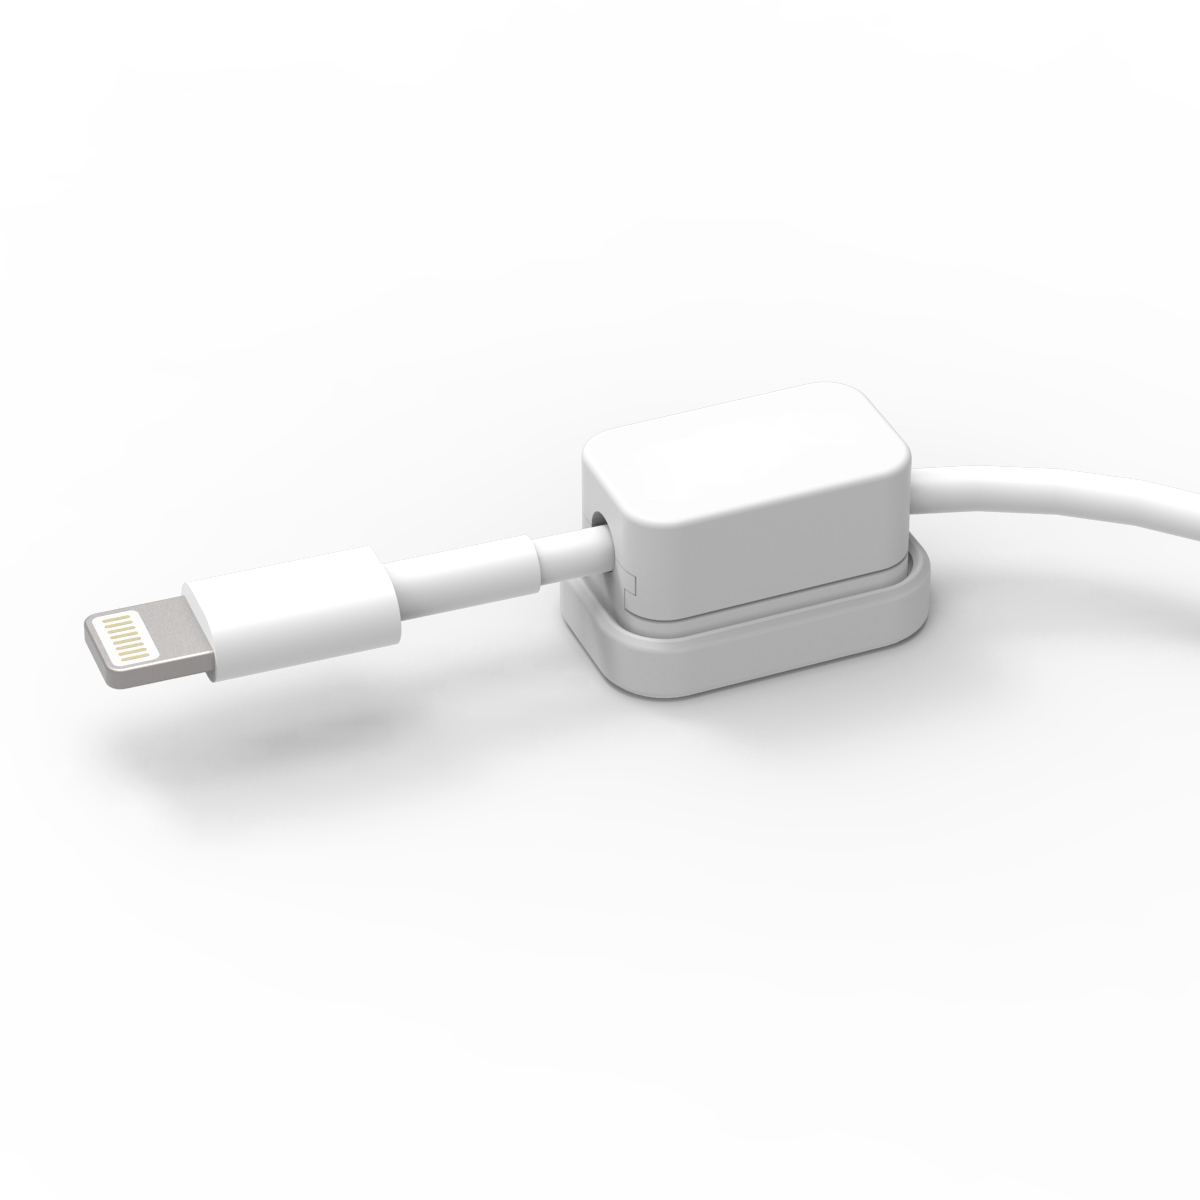 CableDock with cable